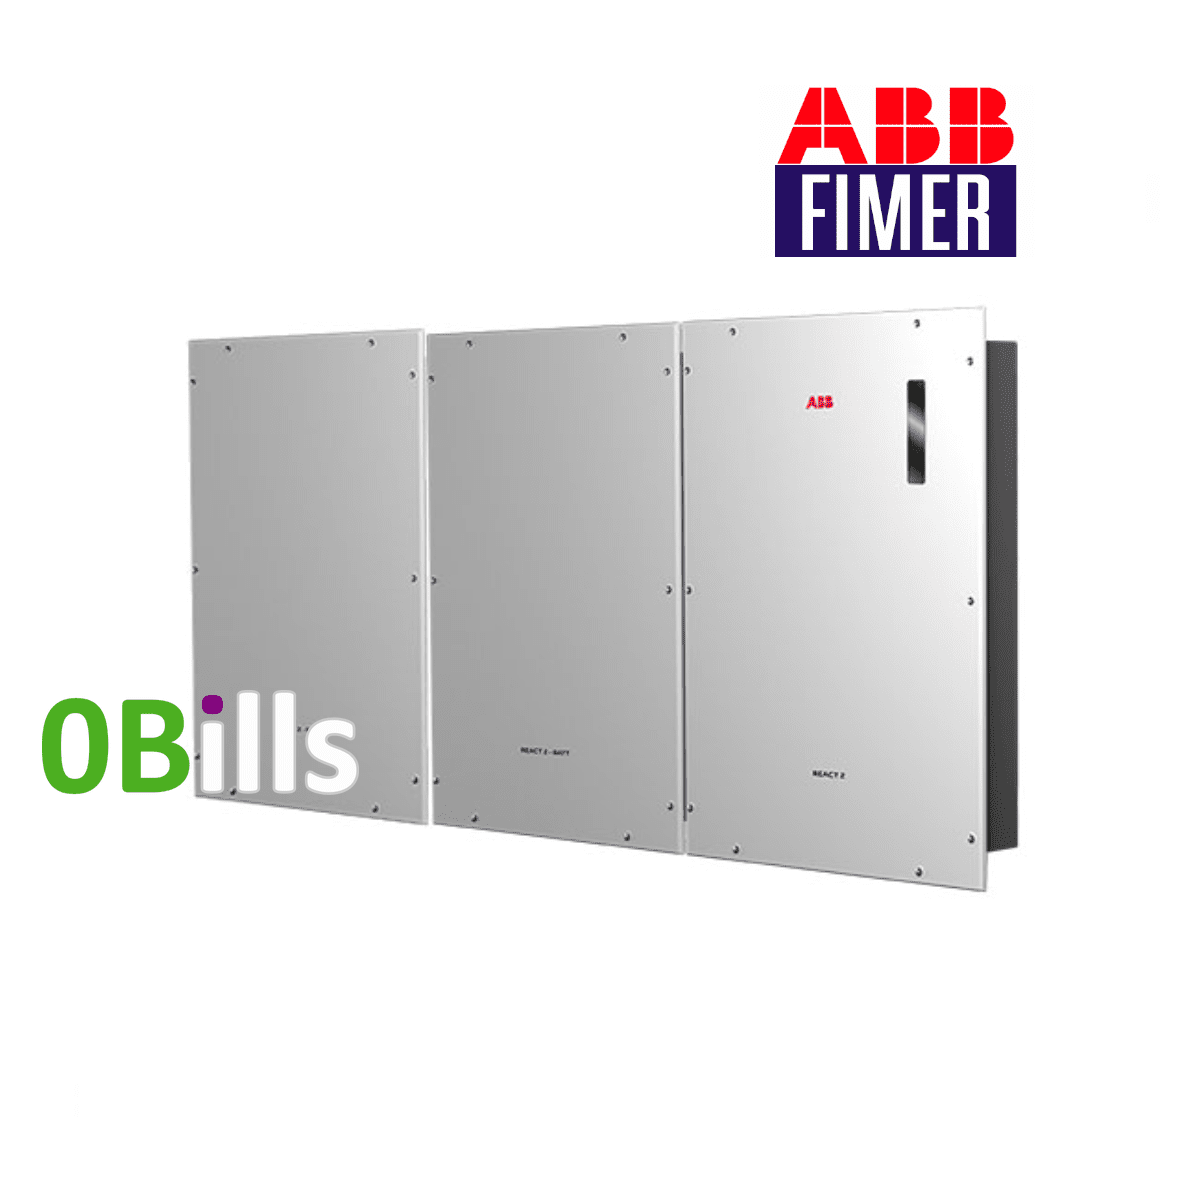 ABB Fimer REACT2-UNO-5.0-TL 8kW Modular Lithium Battery Storage